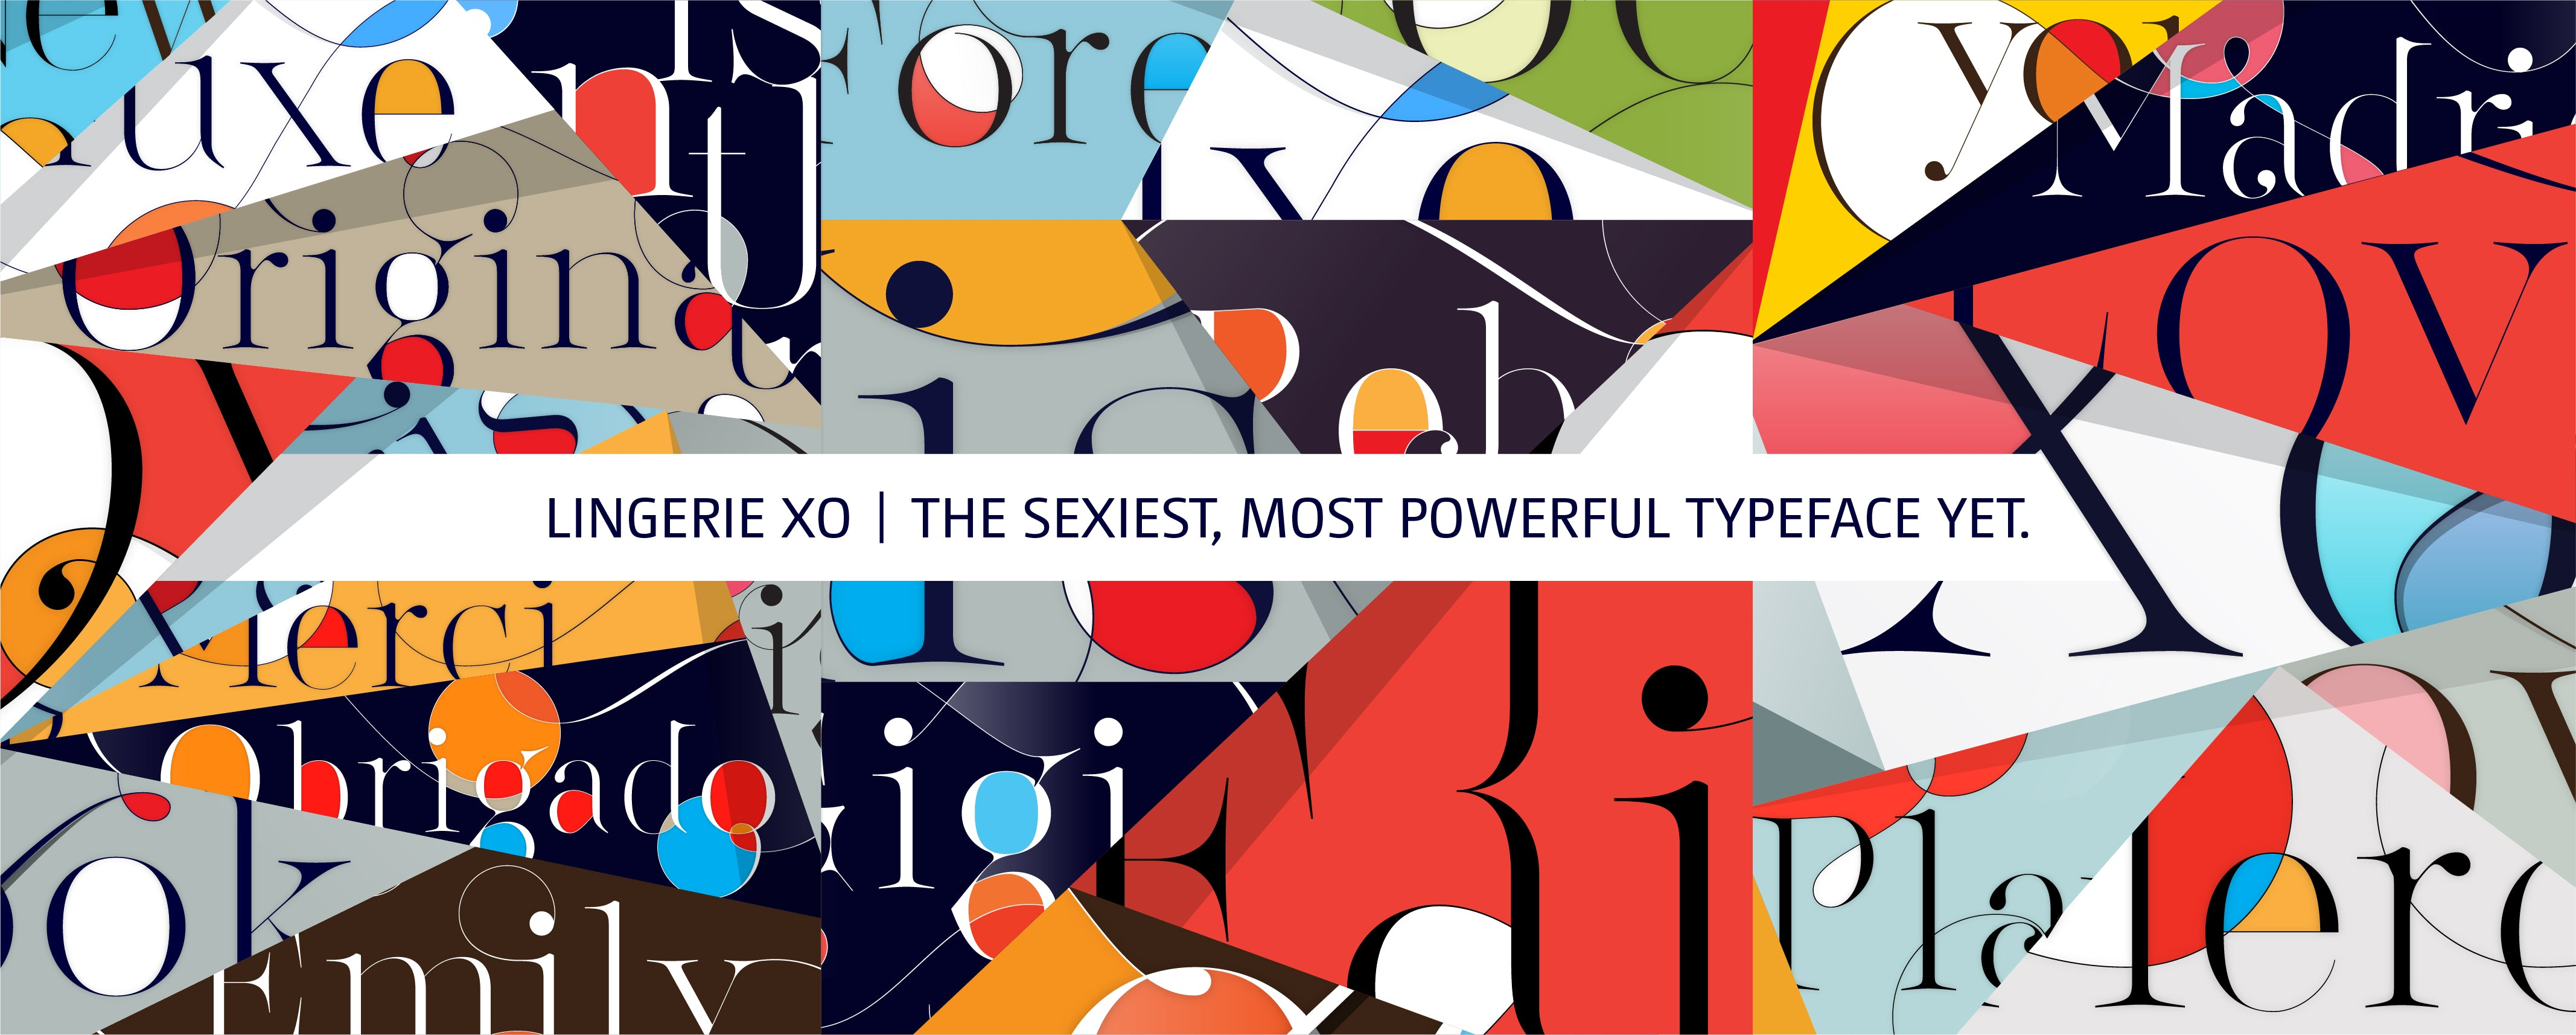 Lingerie XO Typeface - Super Sexy Font for Fashion Magazines and Luxury Brands